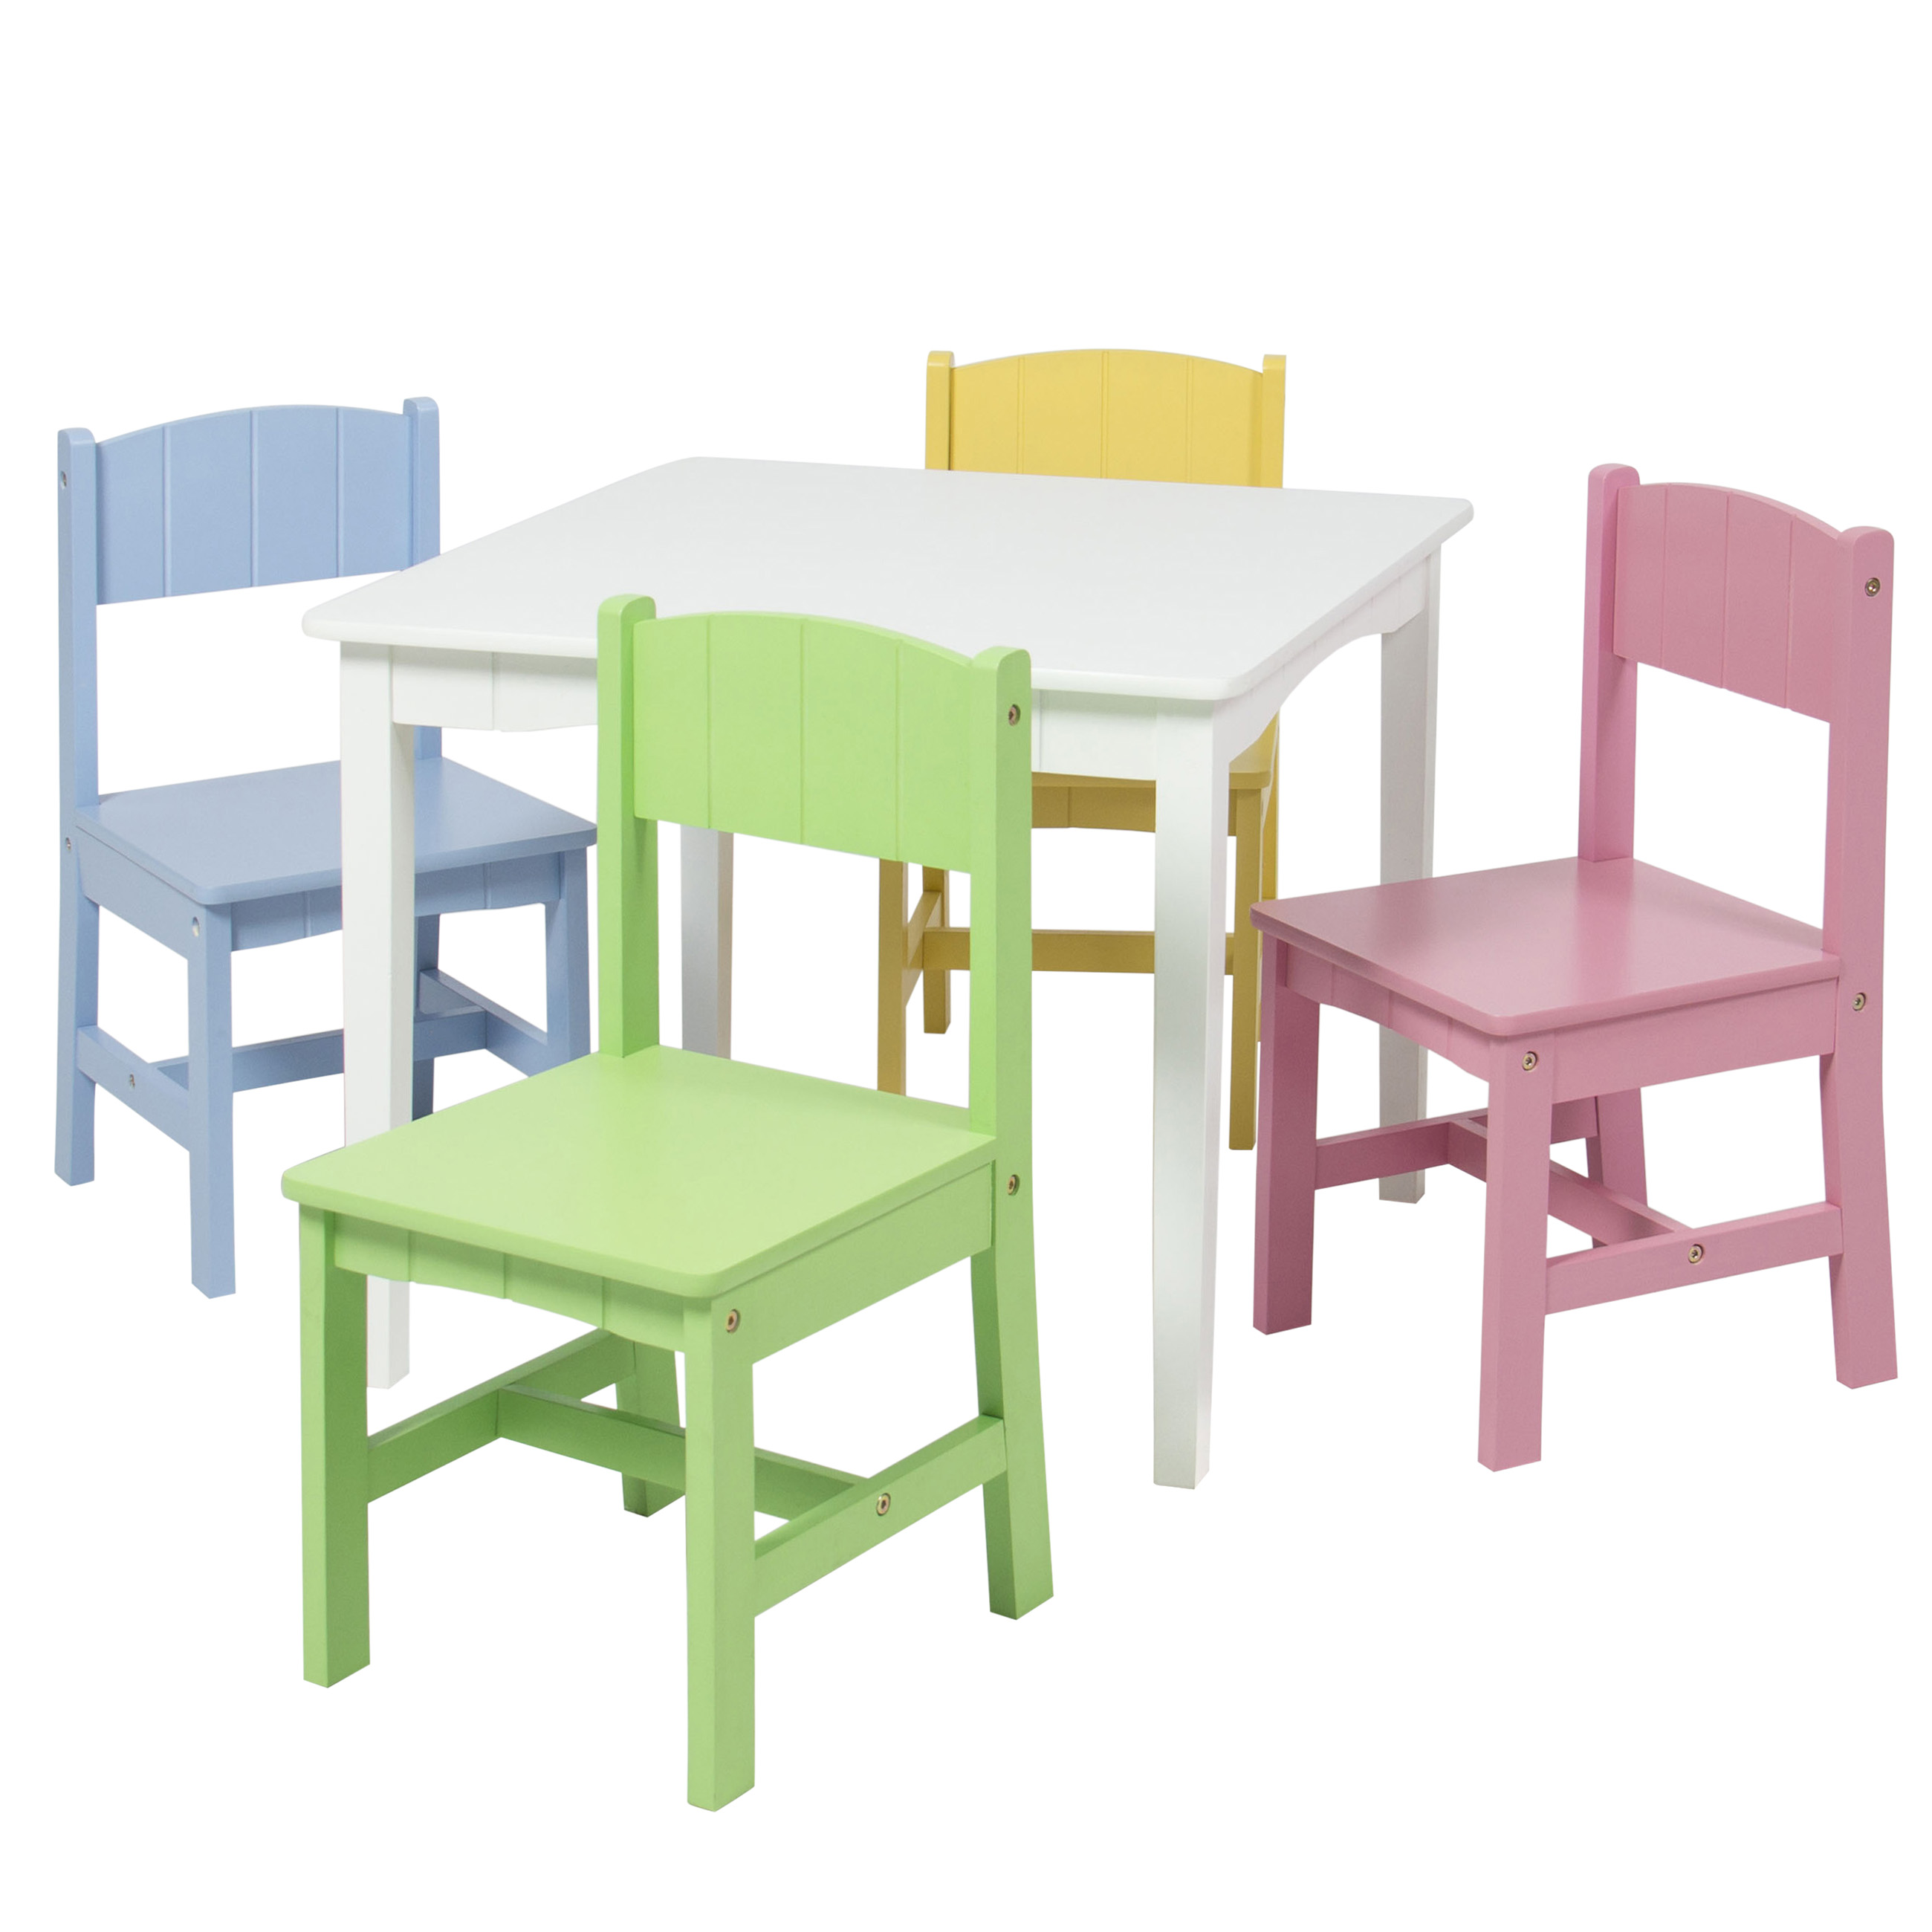 Wooden Kids Table And Chairs Wooden Kids Table And 4 Chairs Set Furniture Play Area